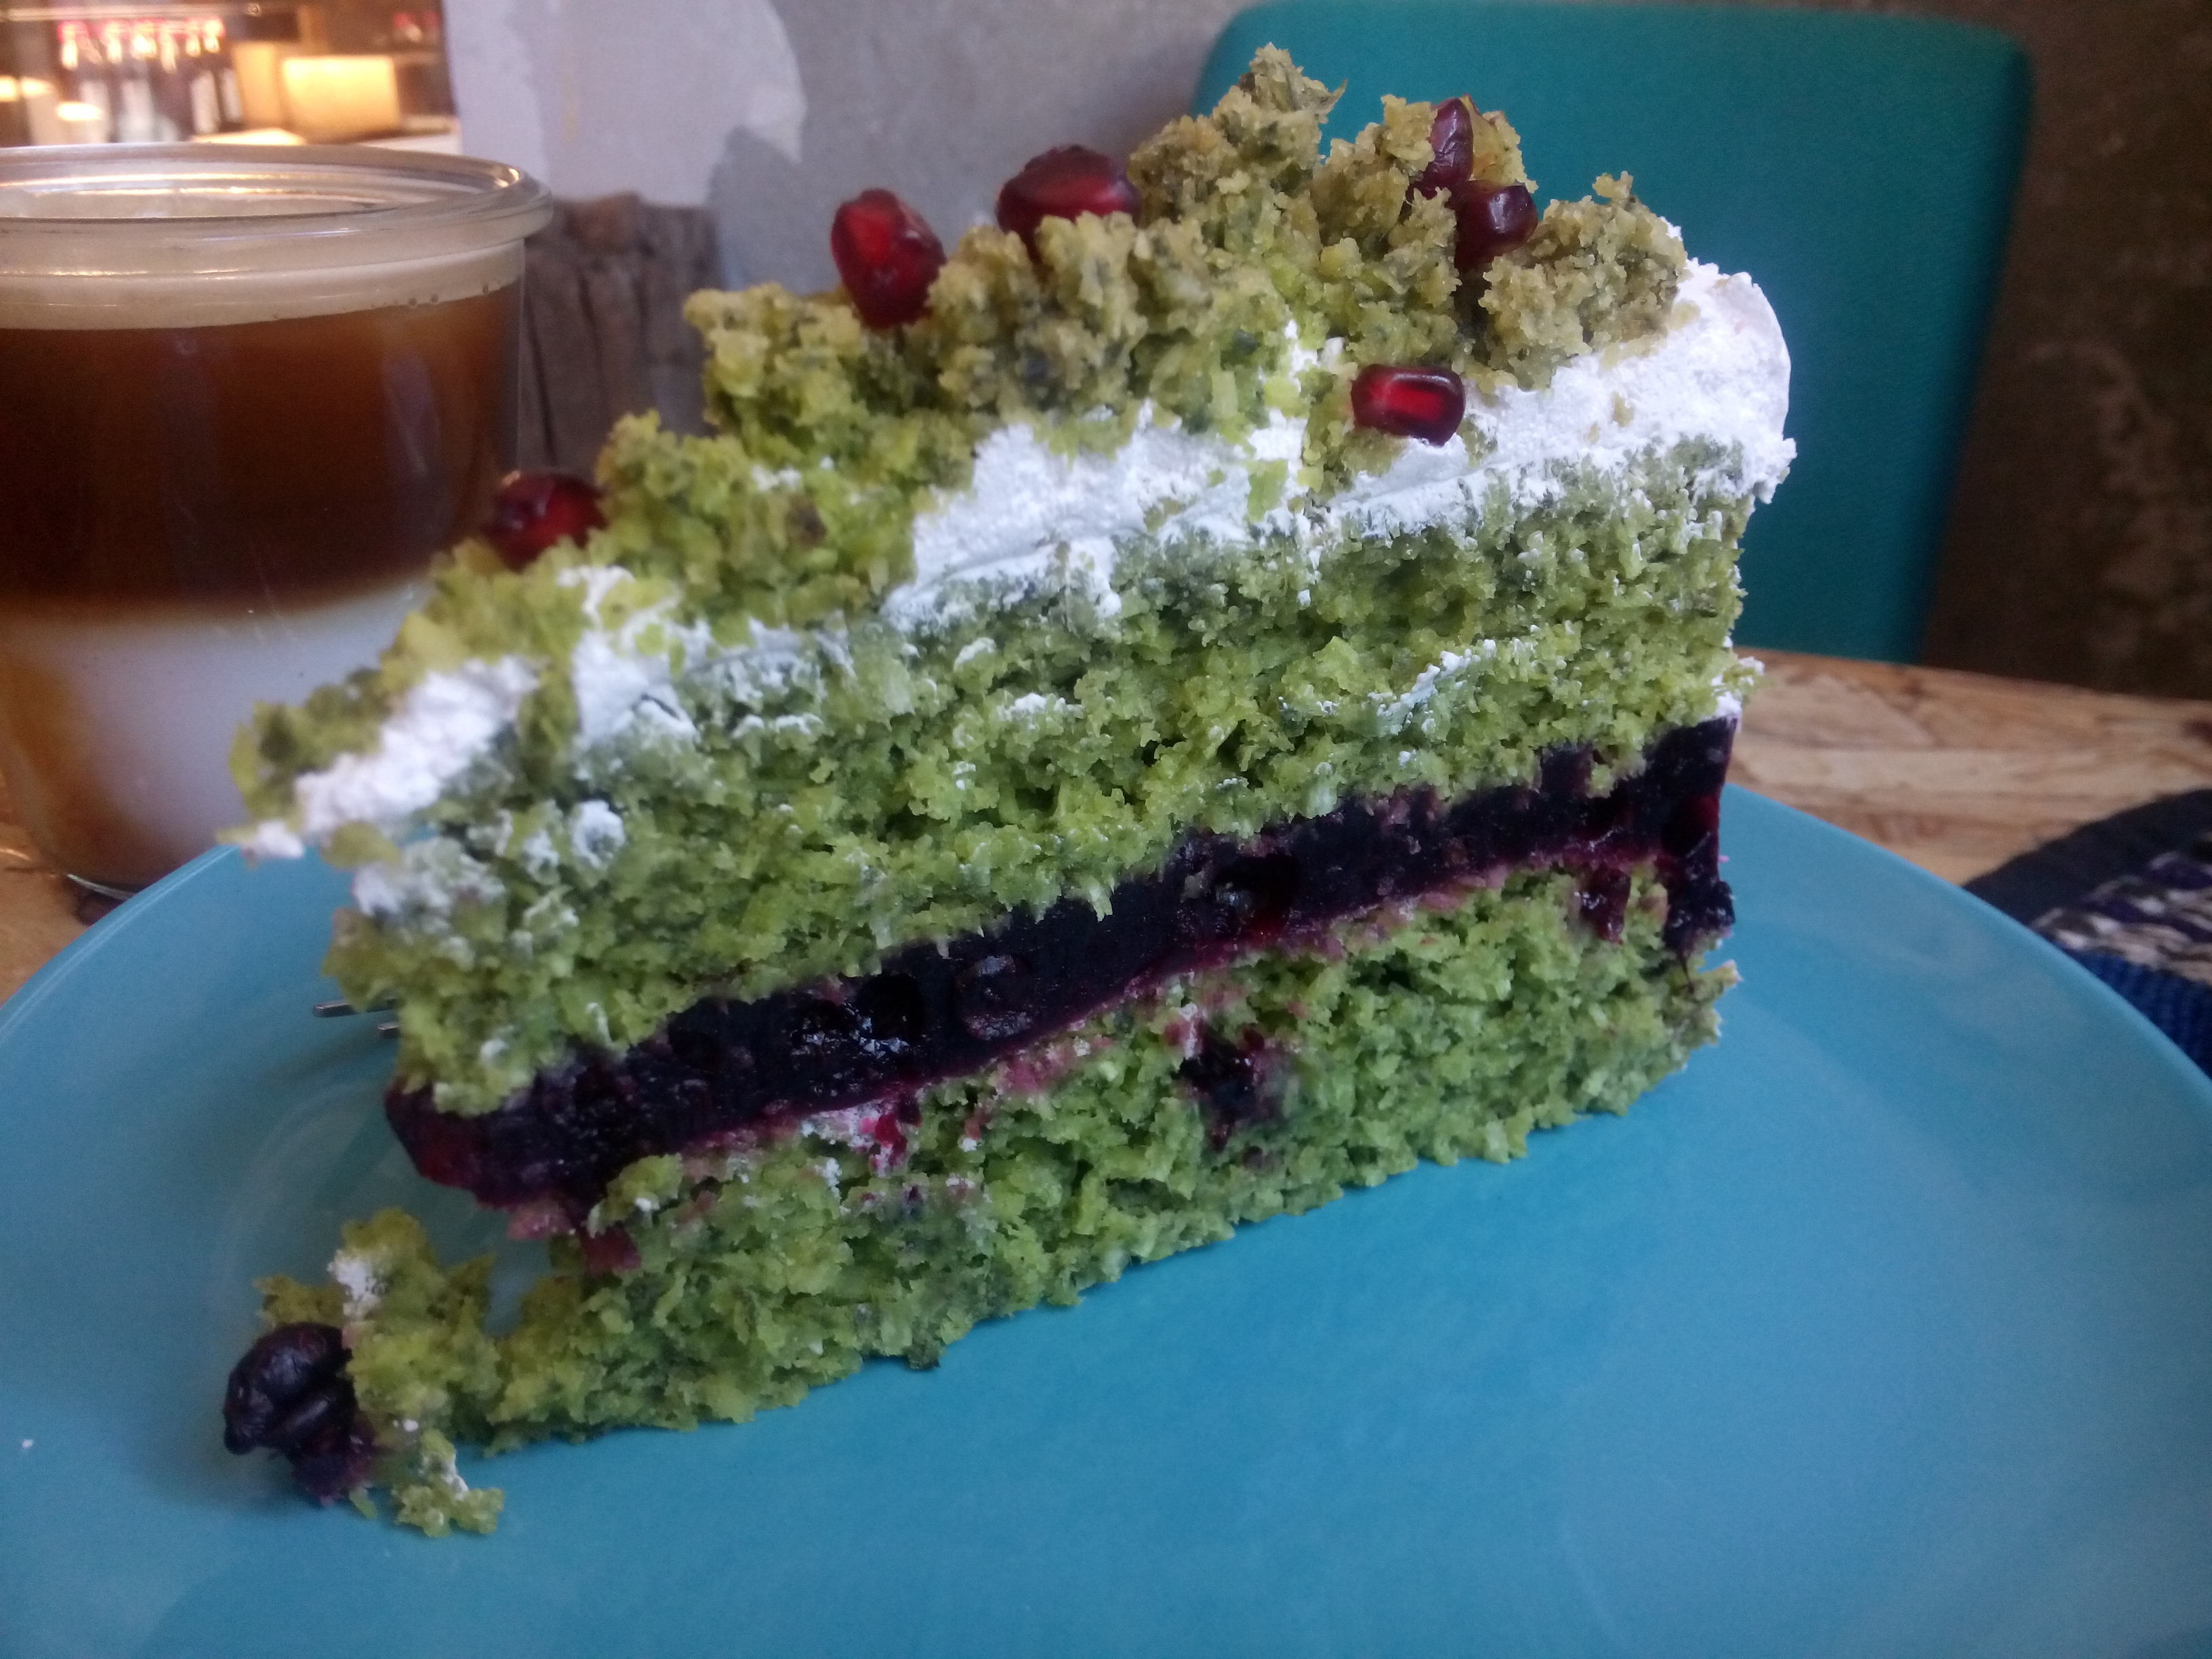 Large wedge of green spongecake with a layer of sour cherry in the middel and coconut cream and pomegranates on top